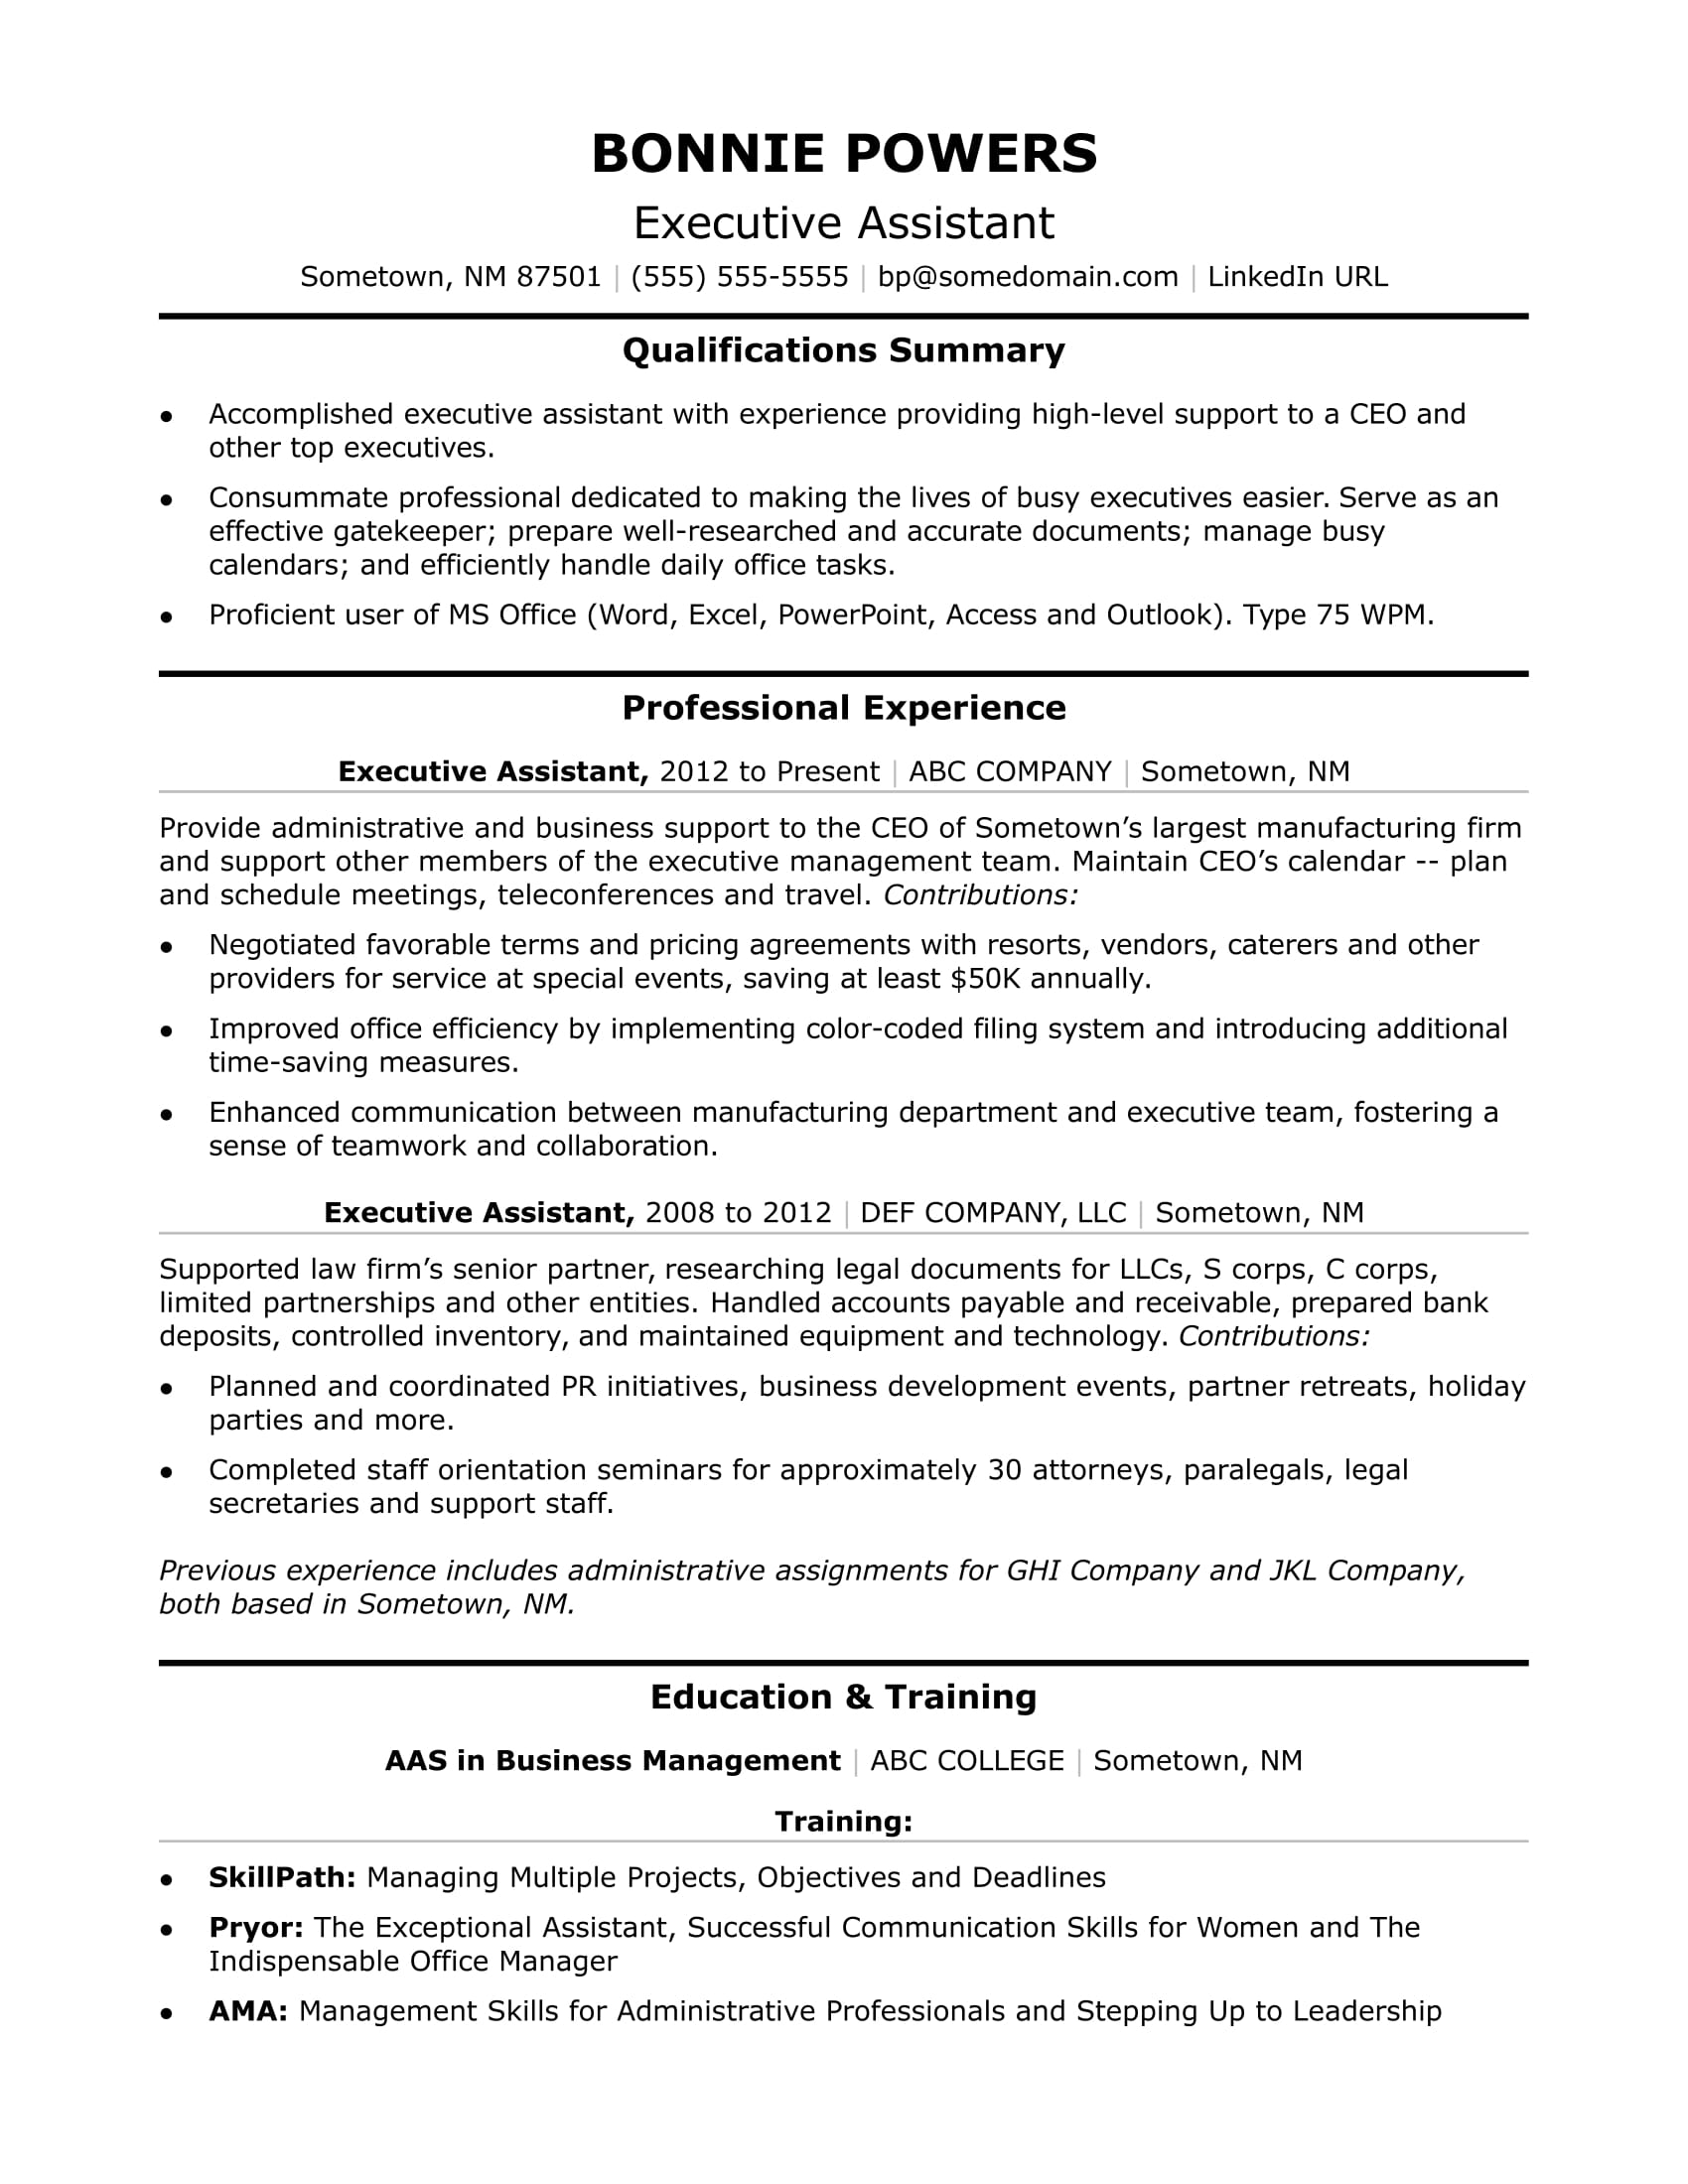 Skill Based Resume Question